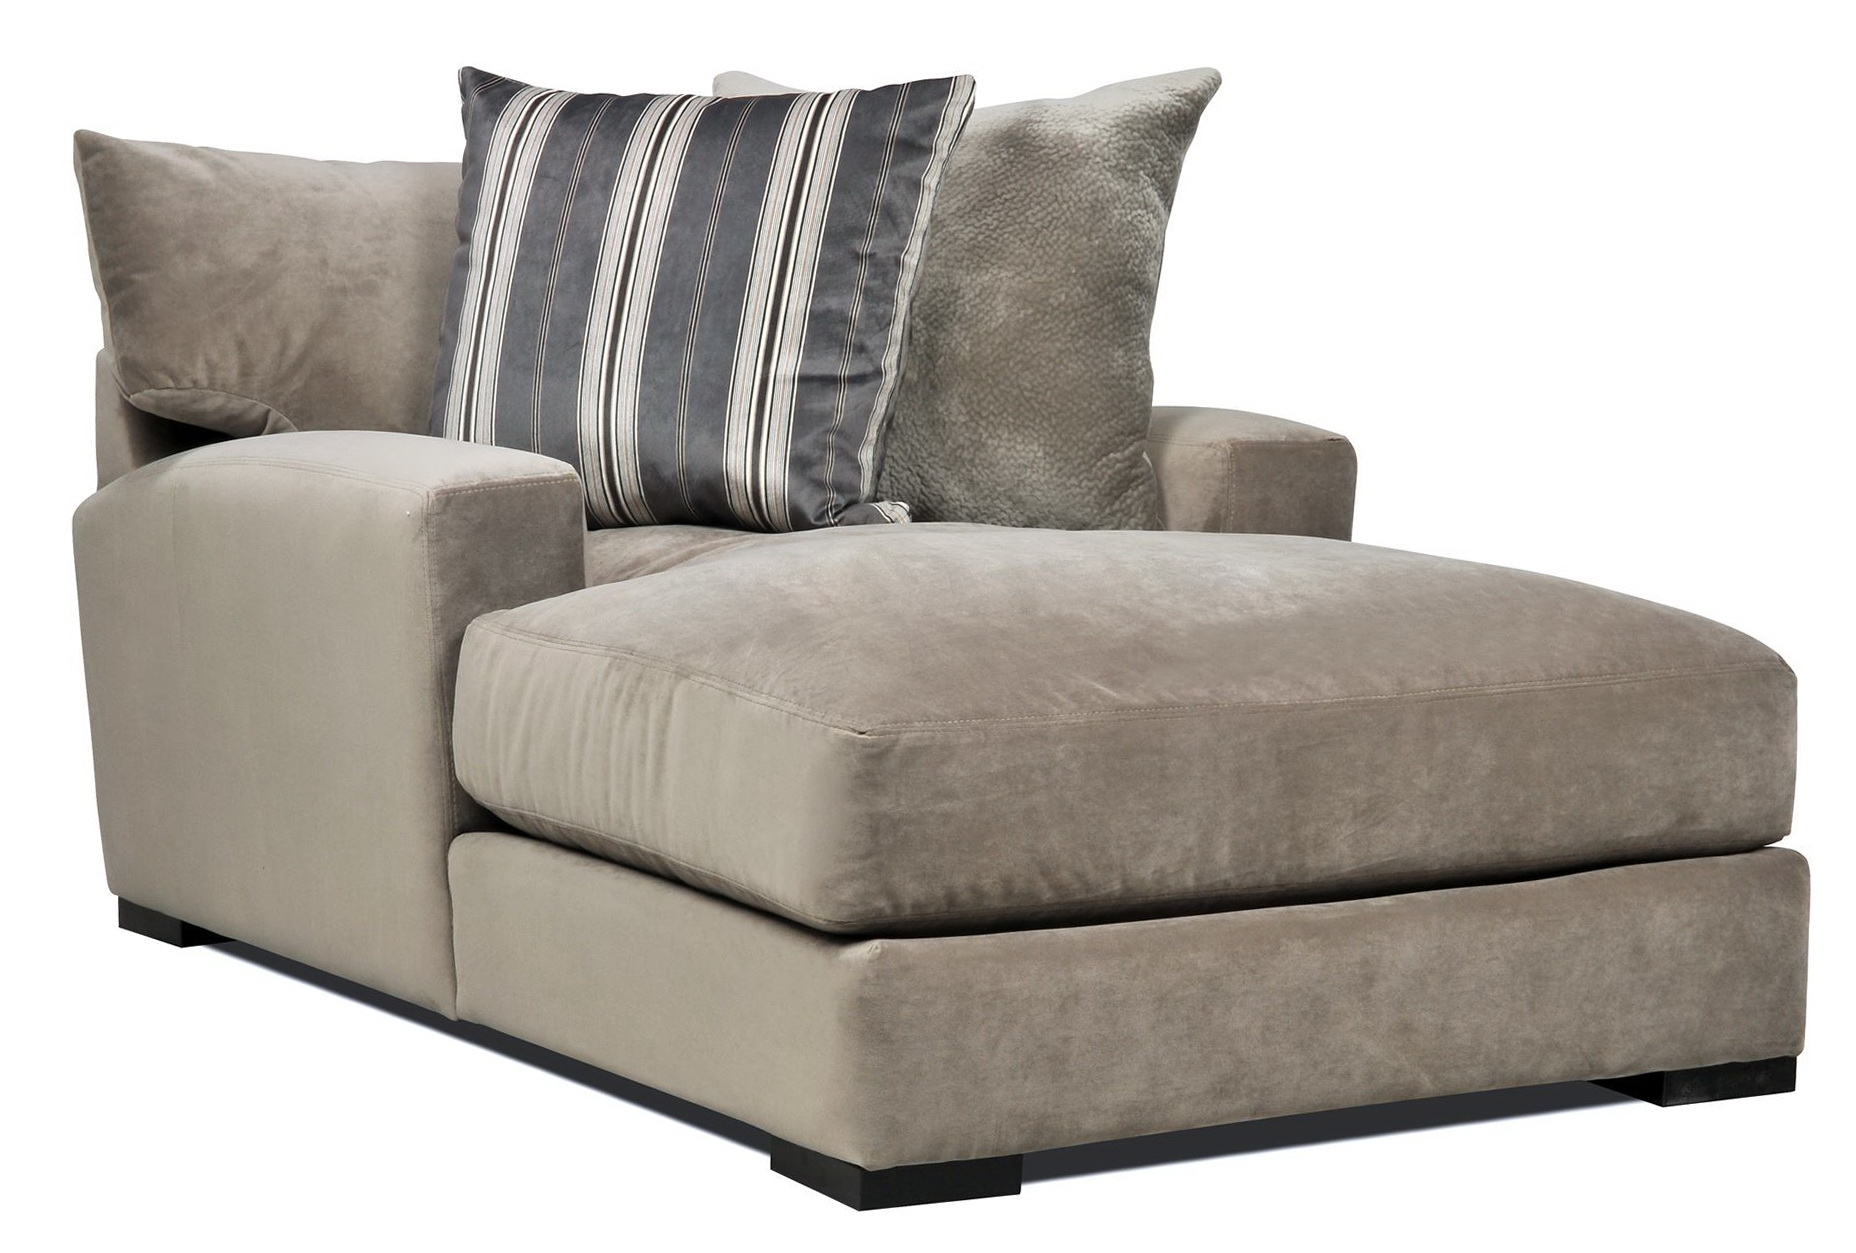 Double Wide Chaise Lounge Indoor With 2 Cushions (View 2 of 15)